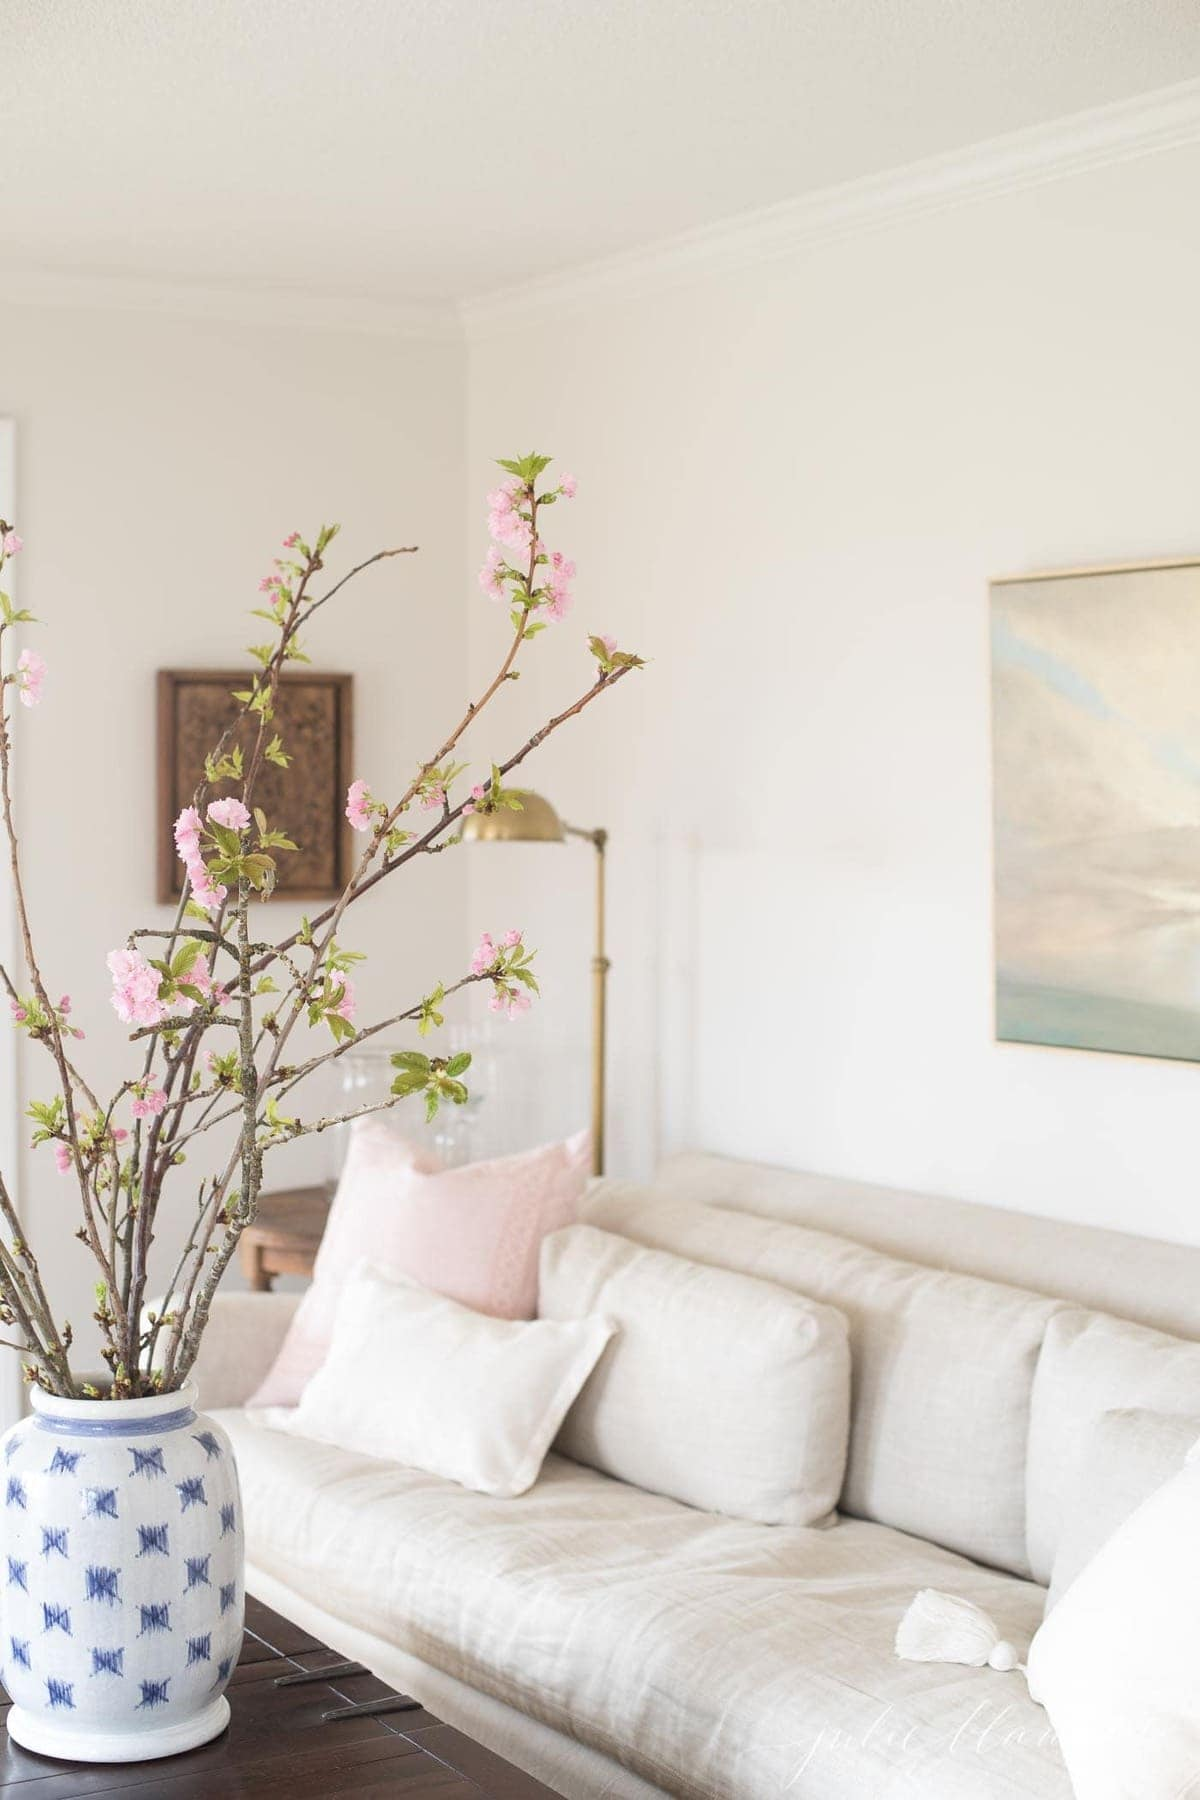 A neutral living room with a linen sofa and tall pink branches in a blue and white vase.